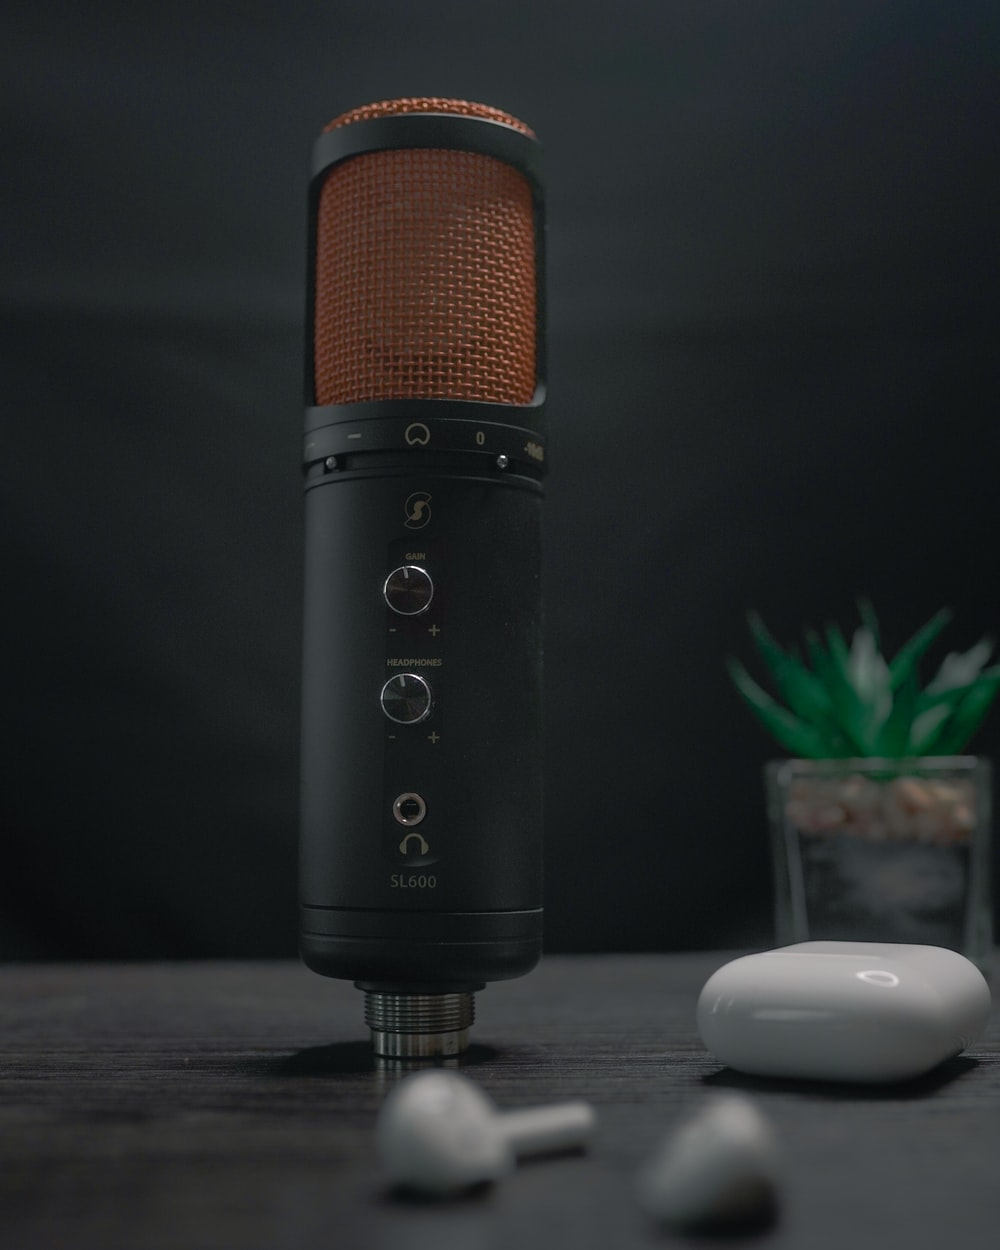 black and orange microphone on table